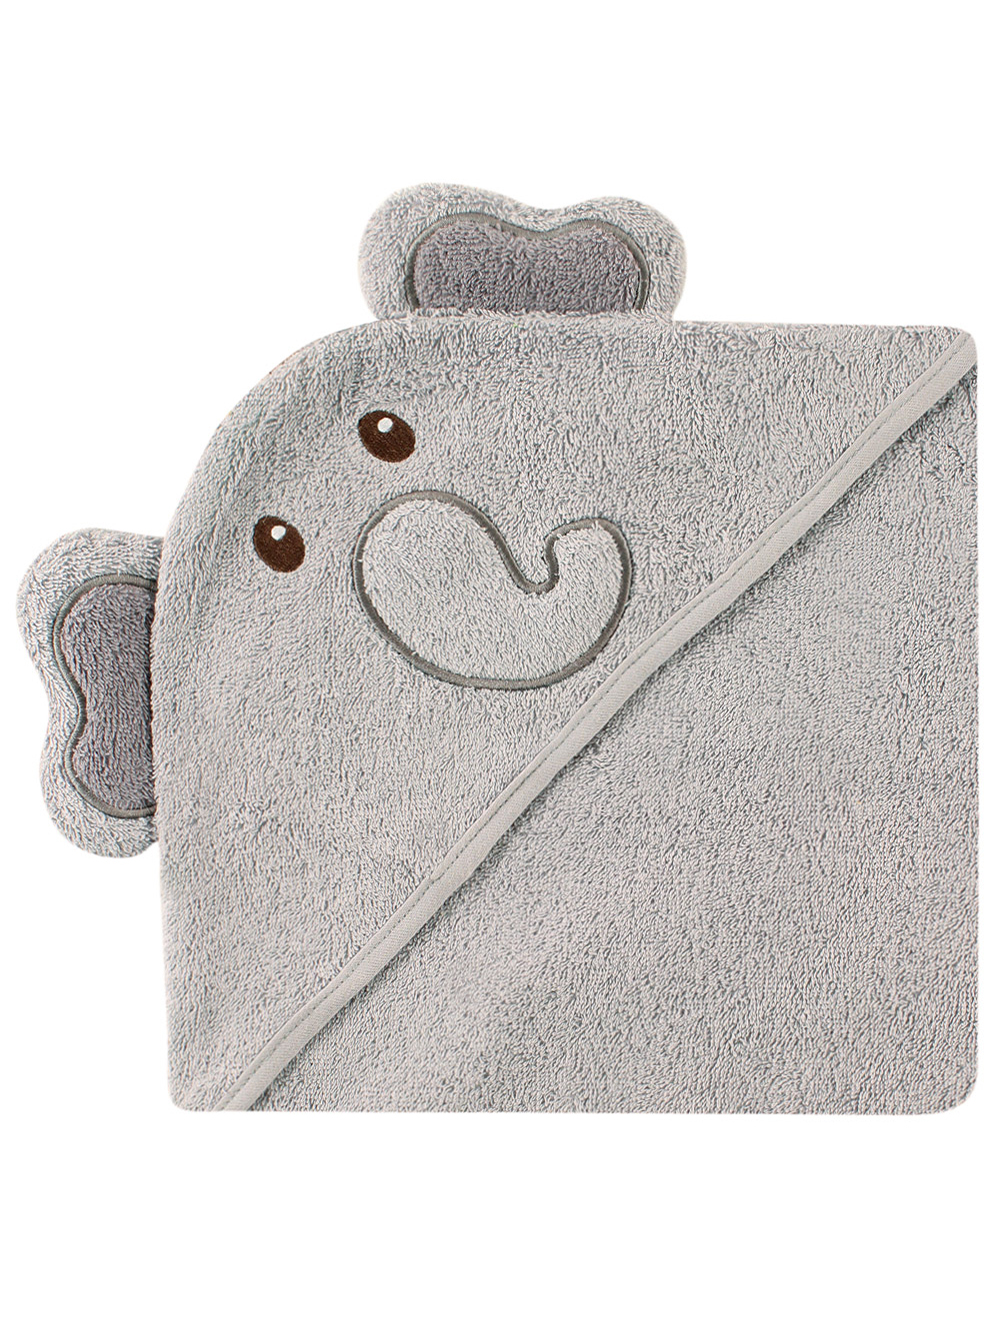 Towels Hooded Towel